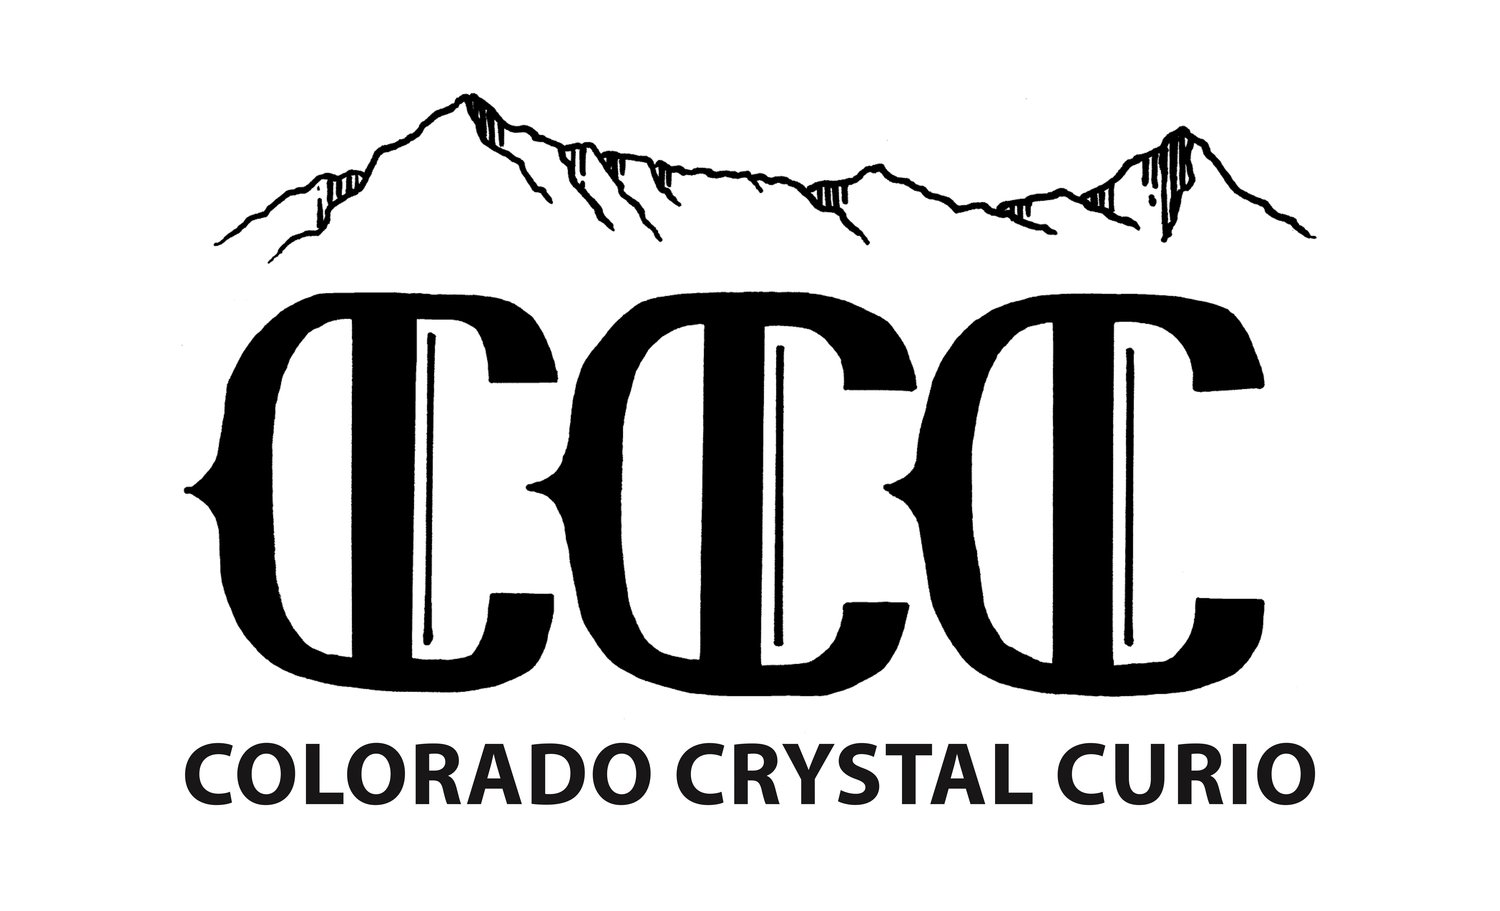 Colorado Crystal Curio LLC